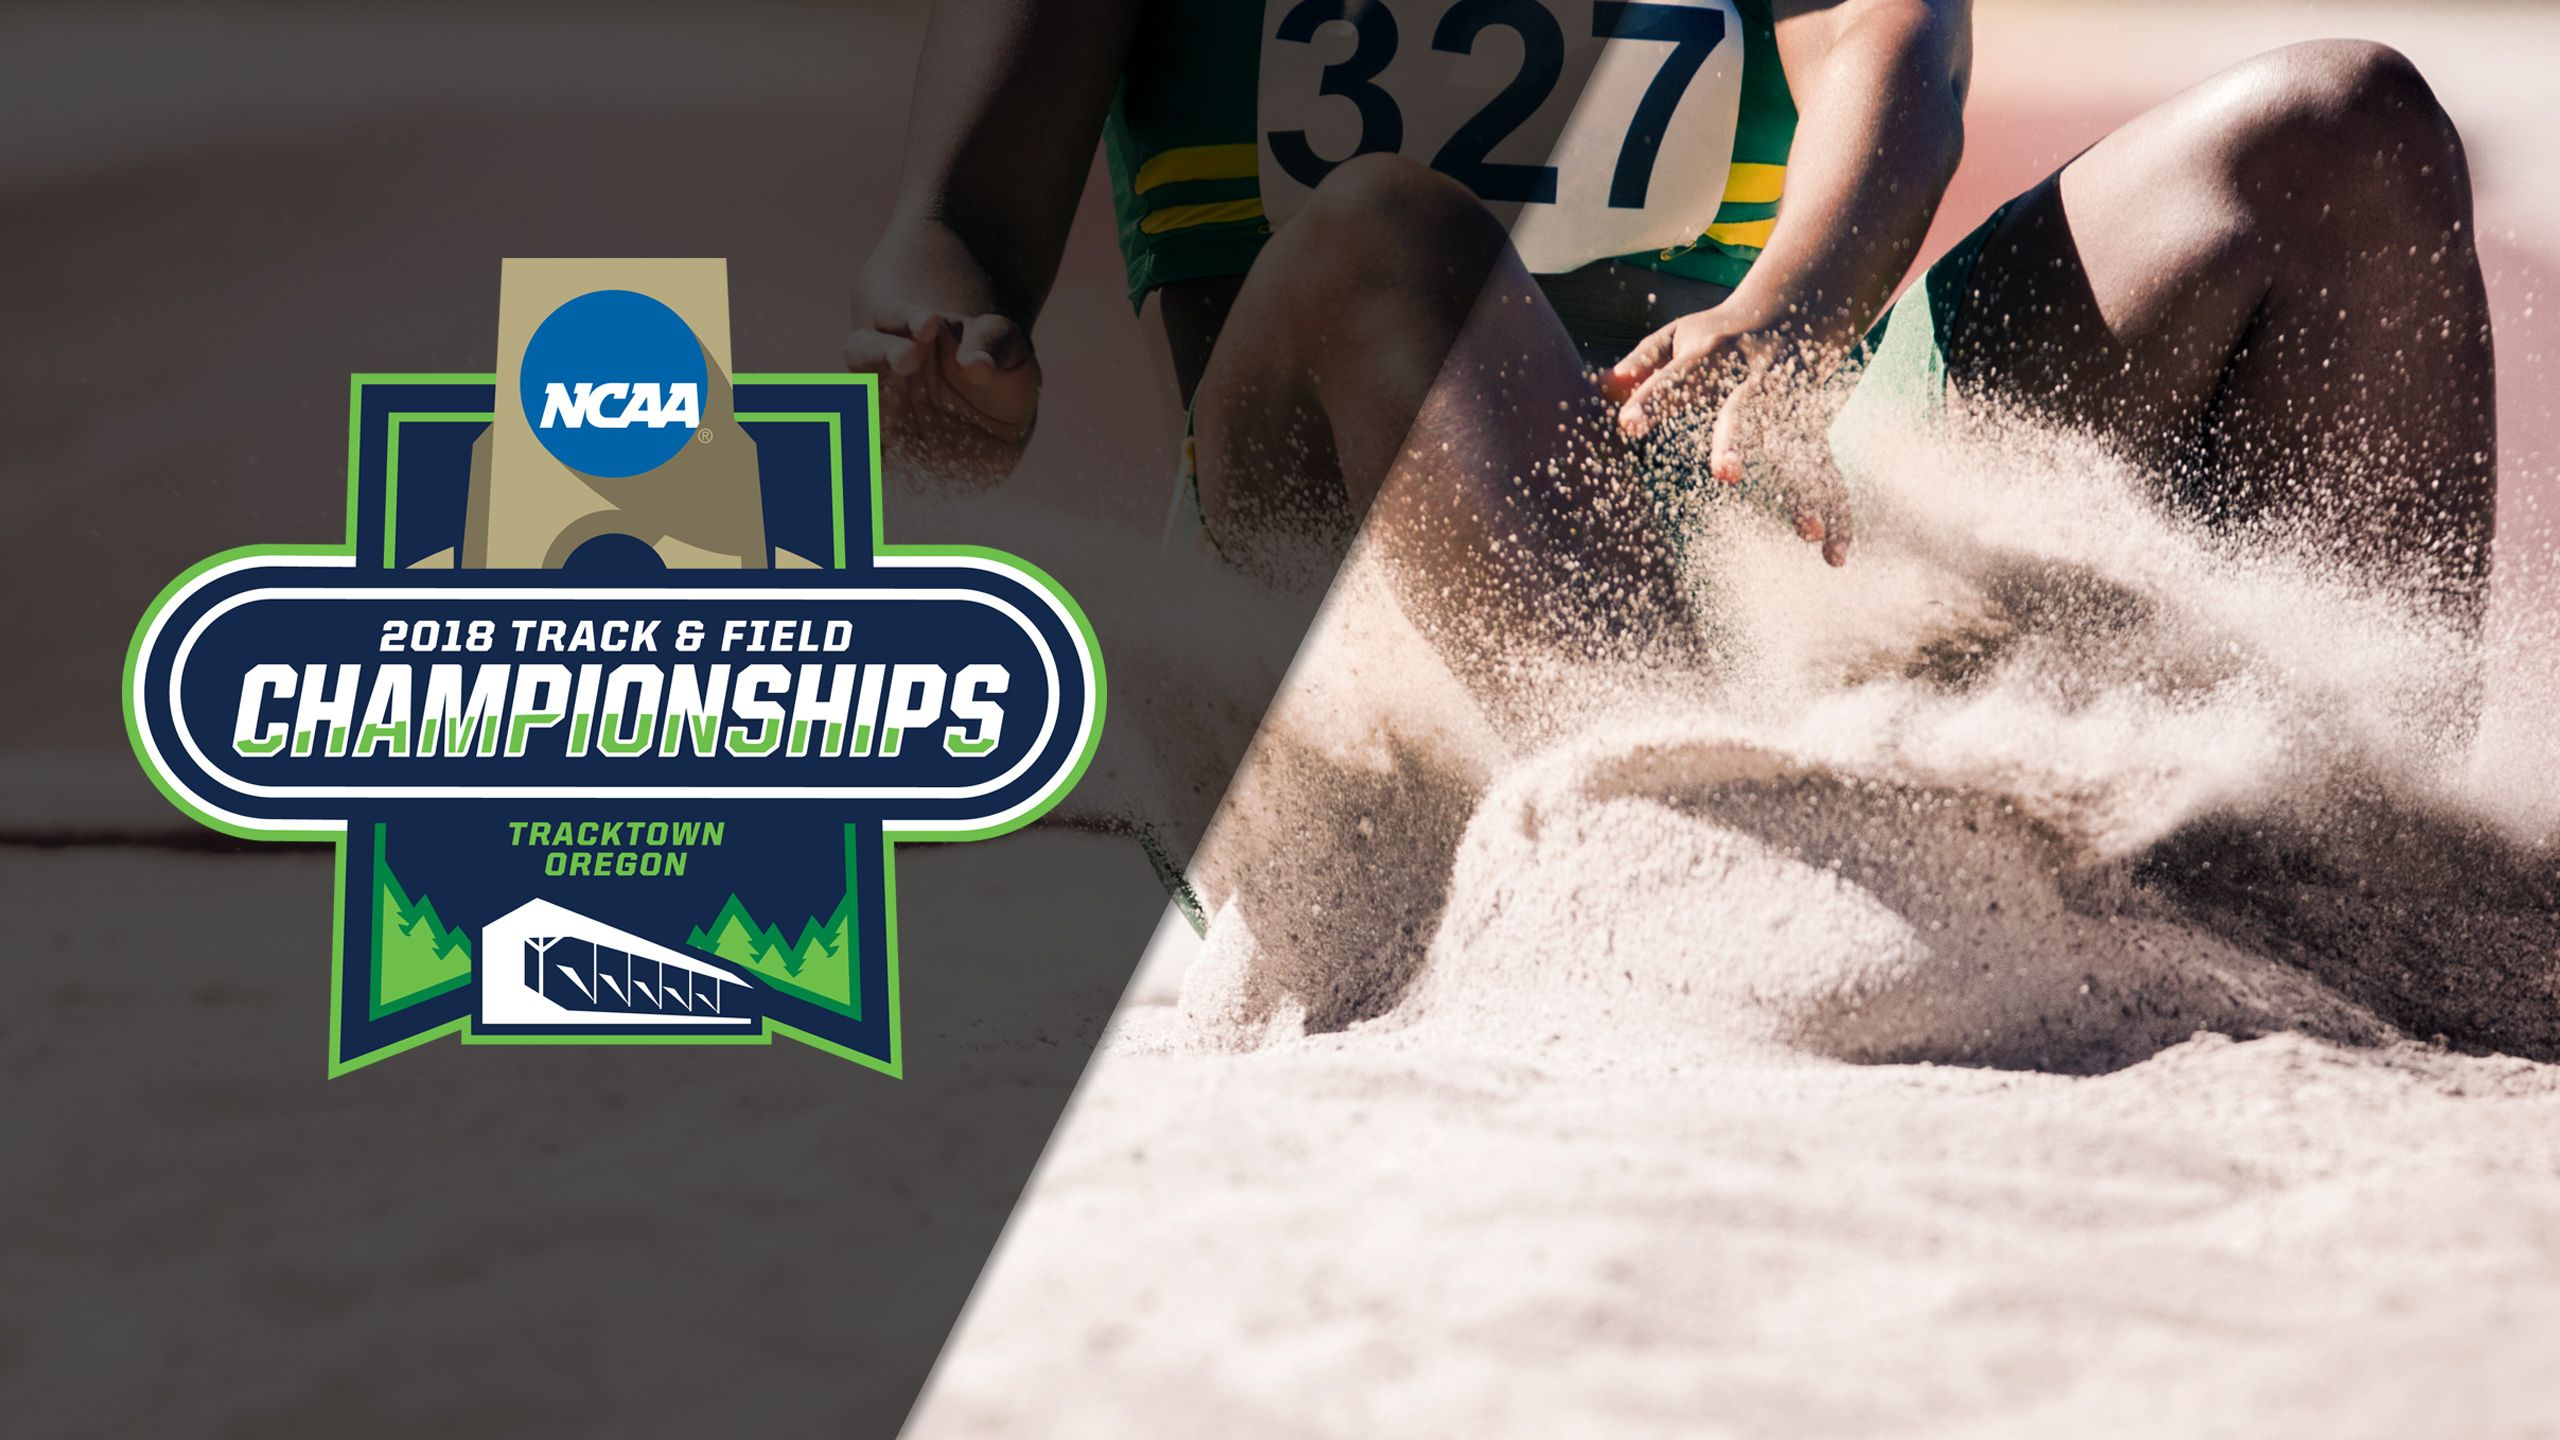 NCAA Track & Field Outdoor Championships - Men's Long Jump Trials (Flight 2) & Final (Feed #3)